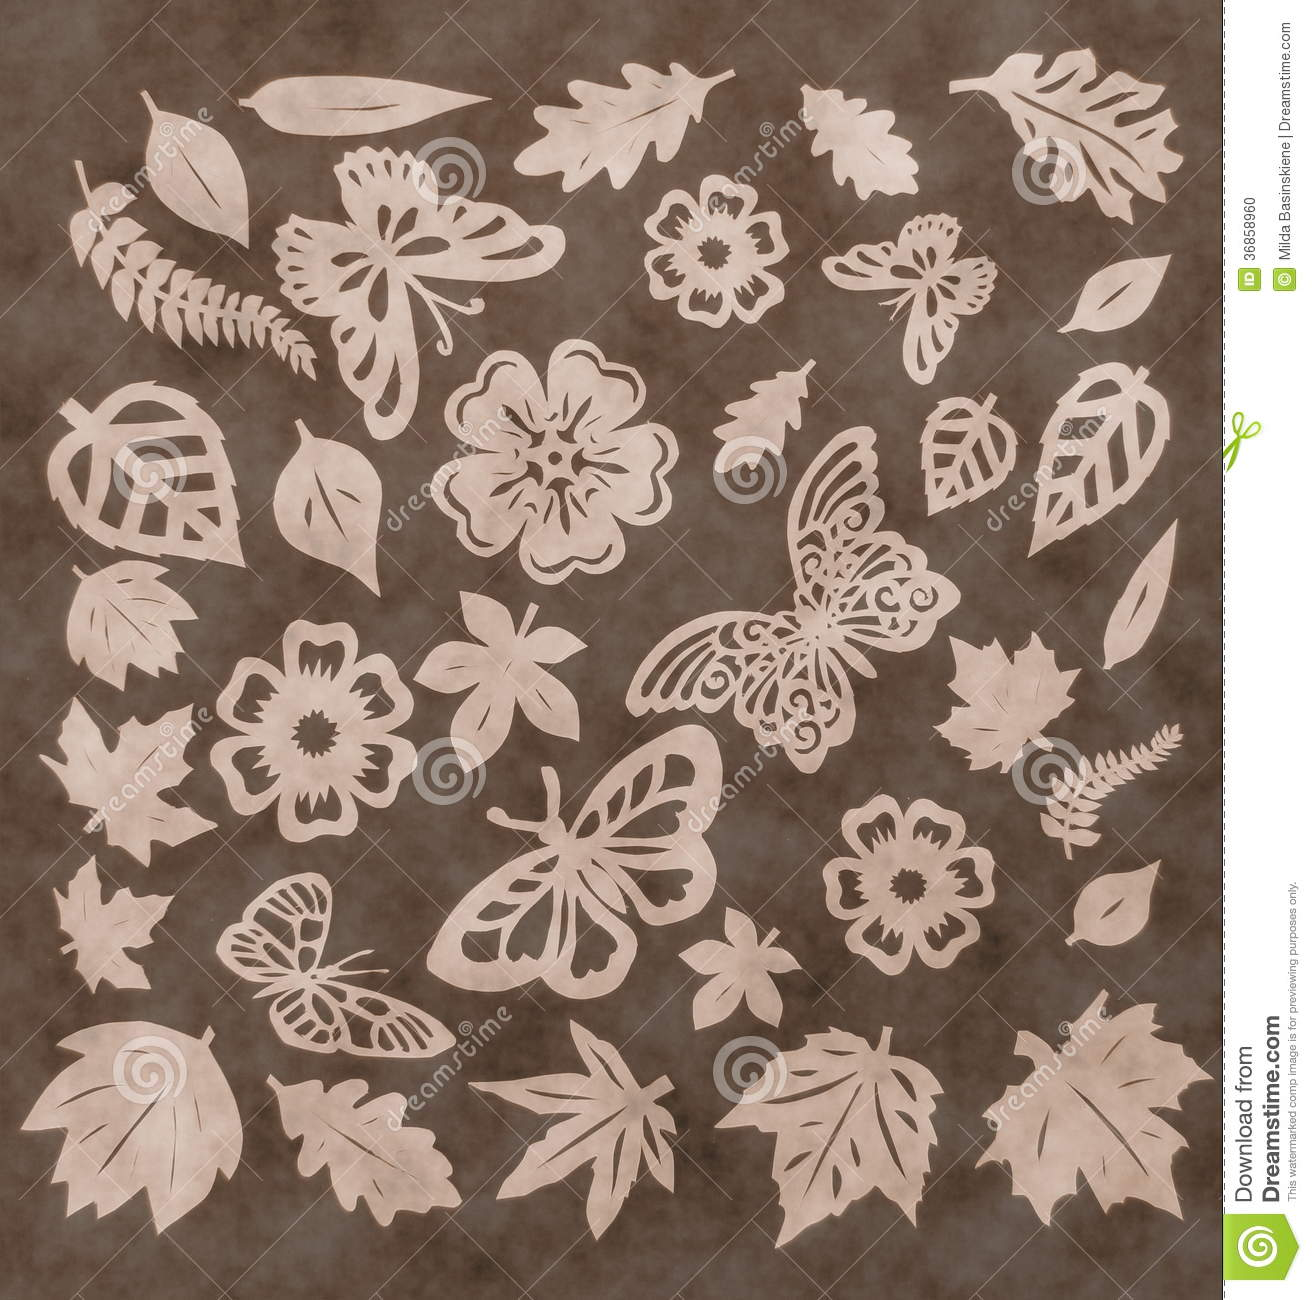 Flower paper cutting templates engneforic flower paper cutting templates mightylinksfo